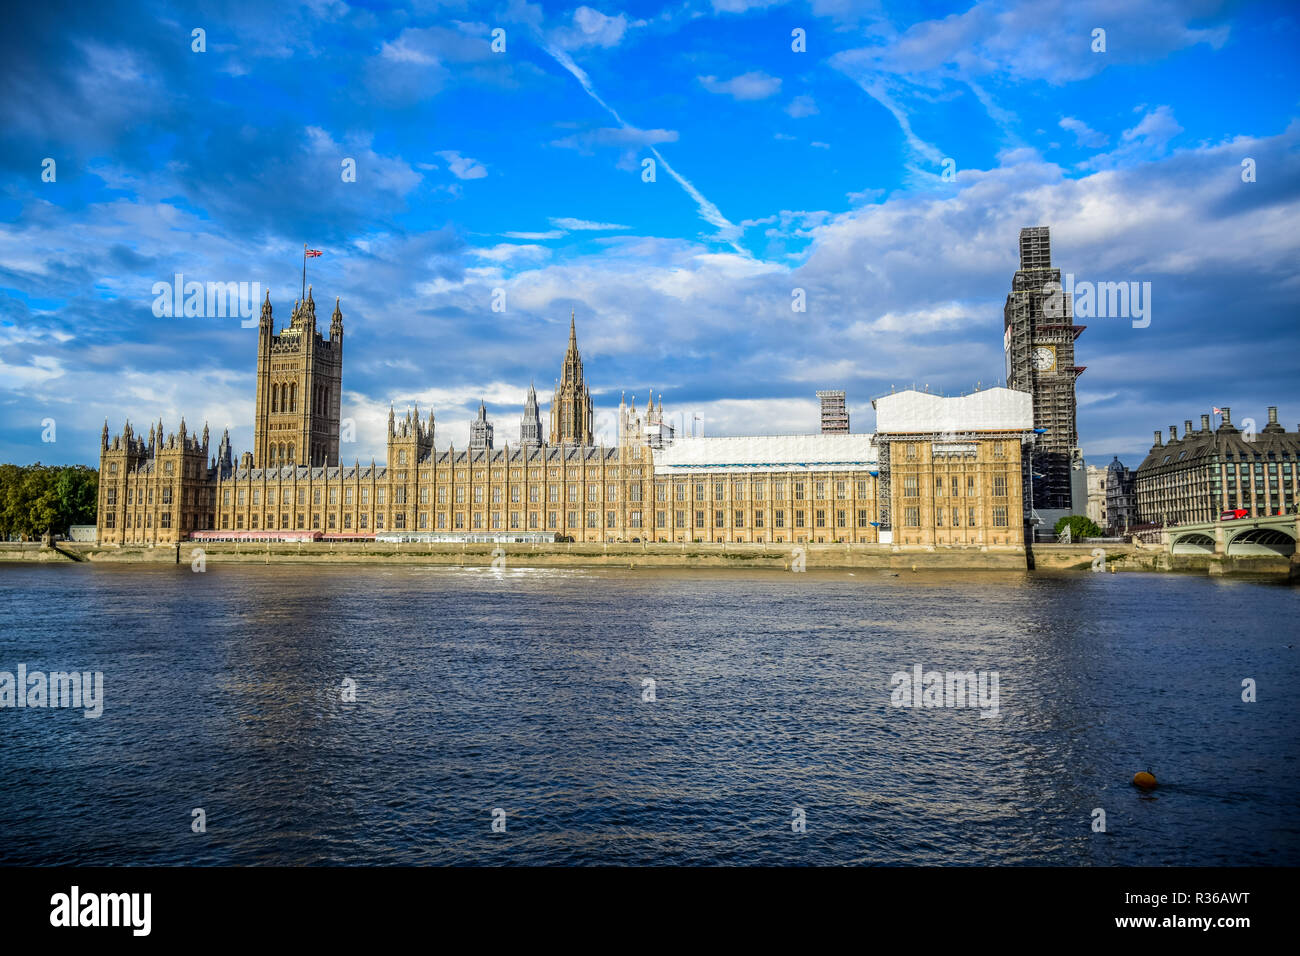 Houses of Parliament and The Big Ben clock tower under repair and maintenance, London, England, United Kingdom Stock Photo